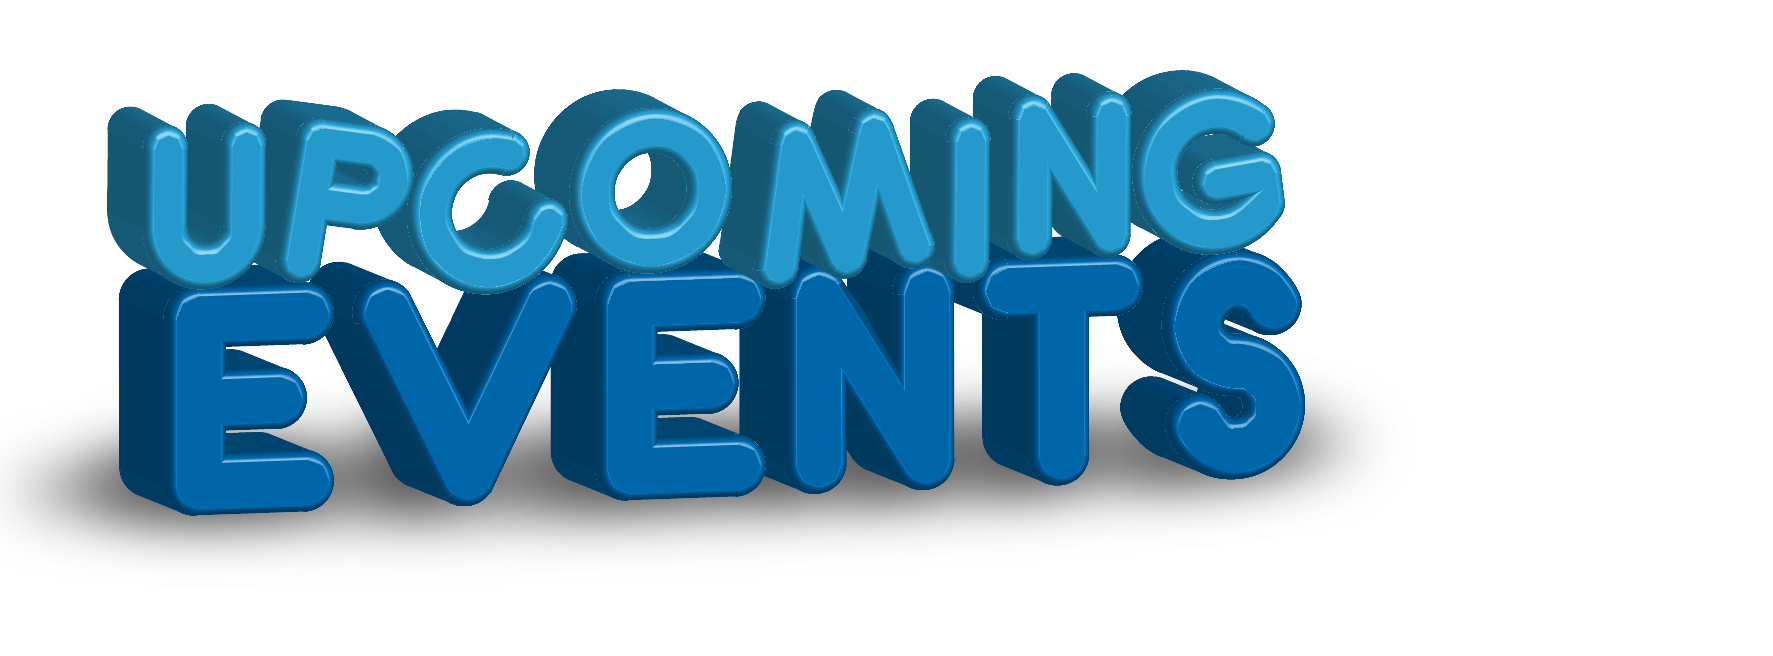 3D Upcoming Events Clipart